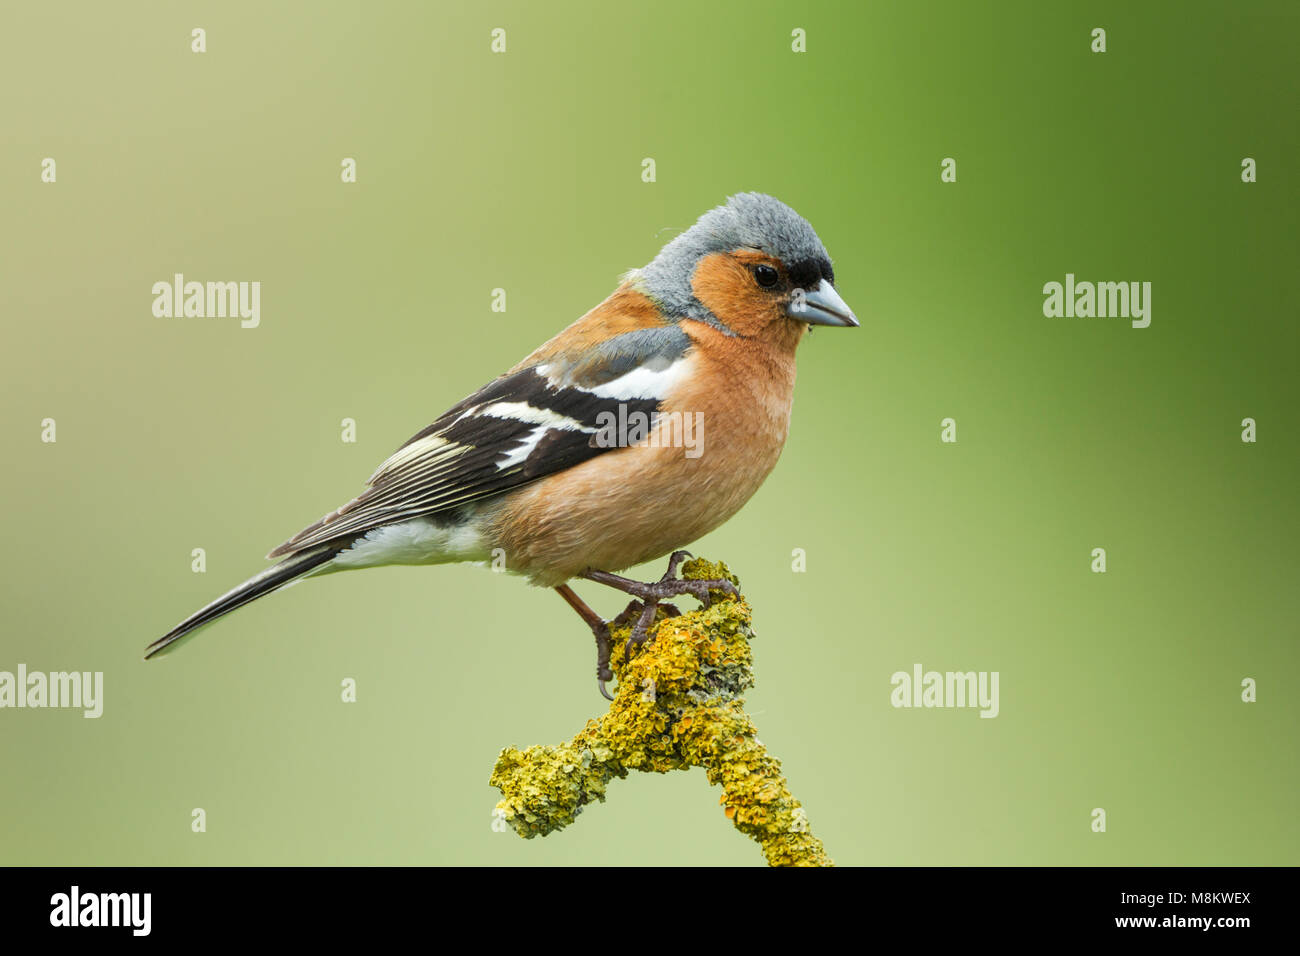 Male chaffinch, Latin name Fringilla coelebs, perched on a colourful lichen covered twig against a green background - Stock Image